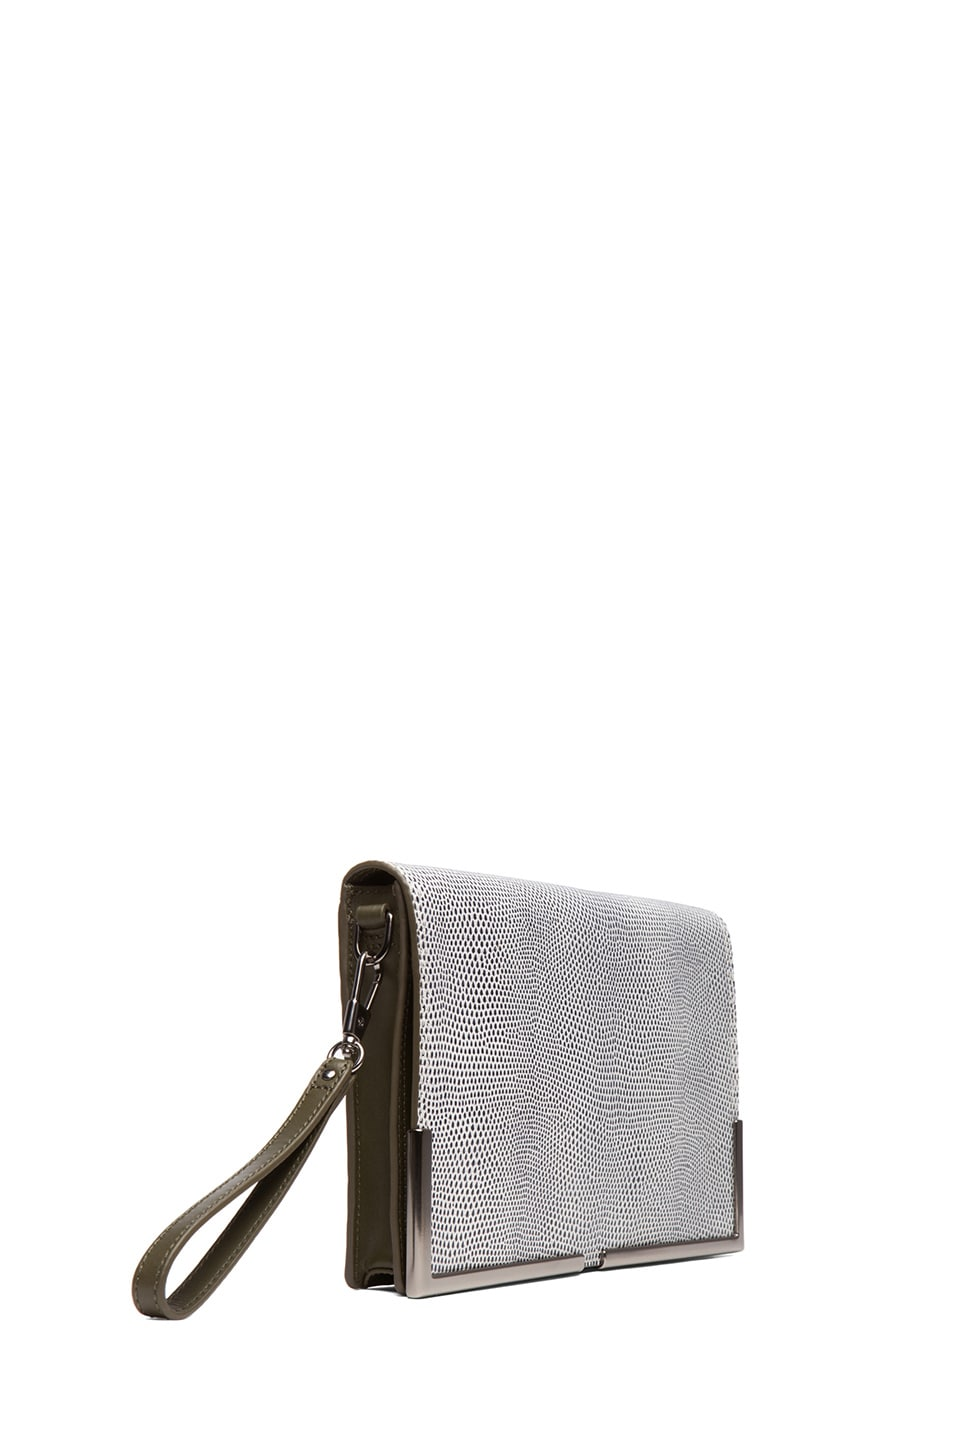 Image 3 of 3.1 phillip lim Scout Flap Clutch in White & Black & Dark Olive